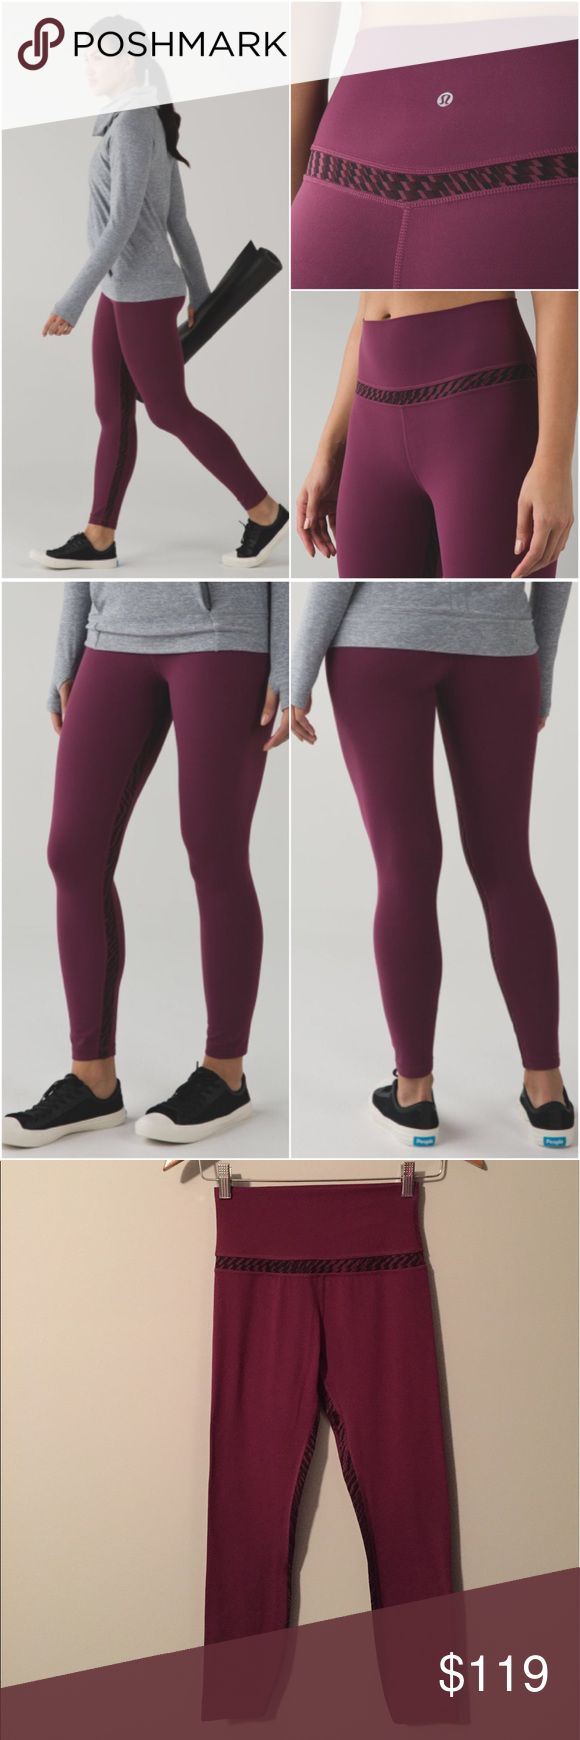 Lululemon Original Align Pant Lululemon Original Align Pant in the color Red Grape/Shifted Horizon Red Grape Black, size 6, excellent condition with no flaws(meaning no piling/seam damage/rips/holes/stains/etc).      Nulu fabric is buttery soft, lightweight, four way stretch and sweat wicking. Added Lycra fibre for great shape retention. High rise. These make your booty look great! Bundle to save 10% off ❤ lululemon athletica Pants Ankle & Cropped